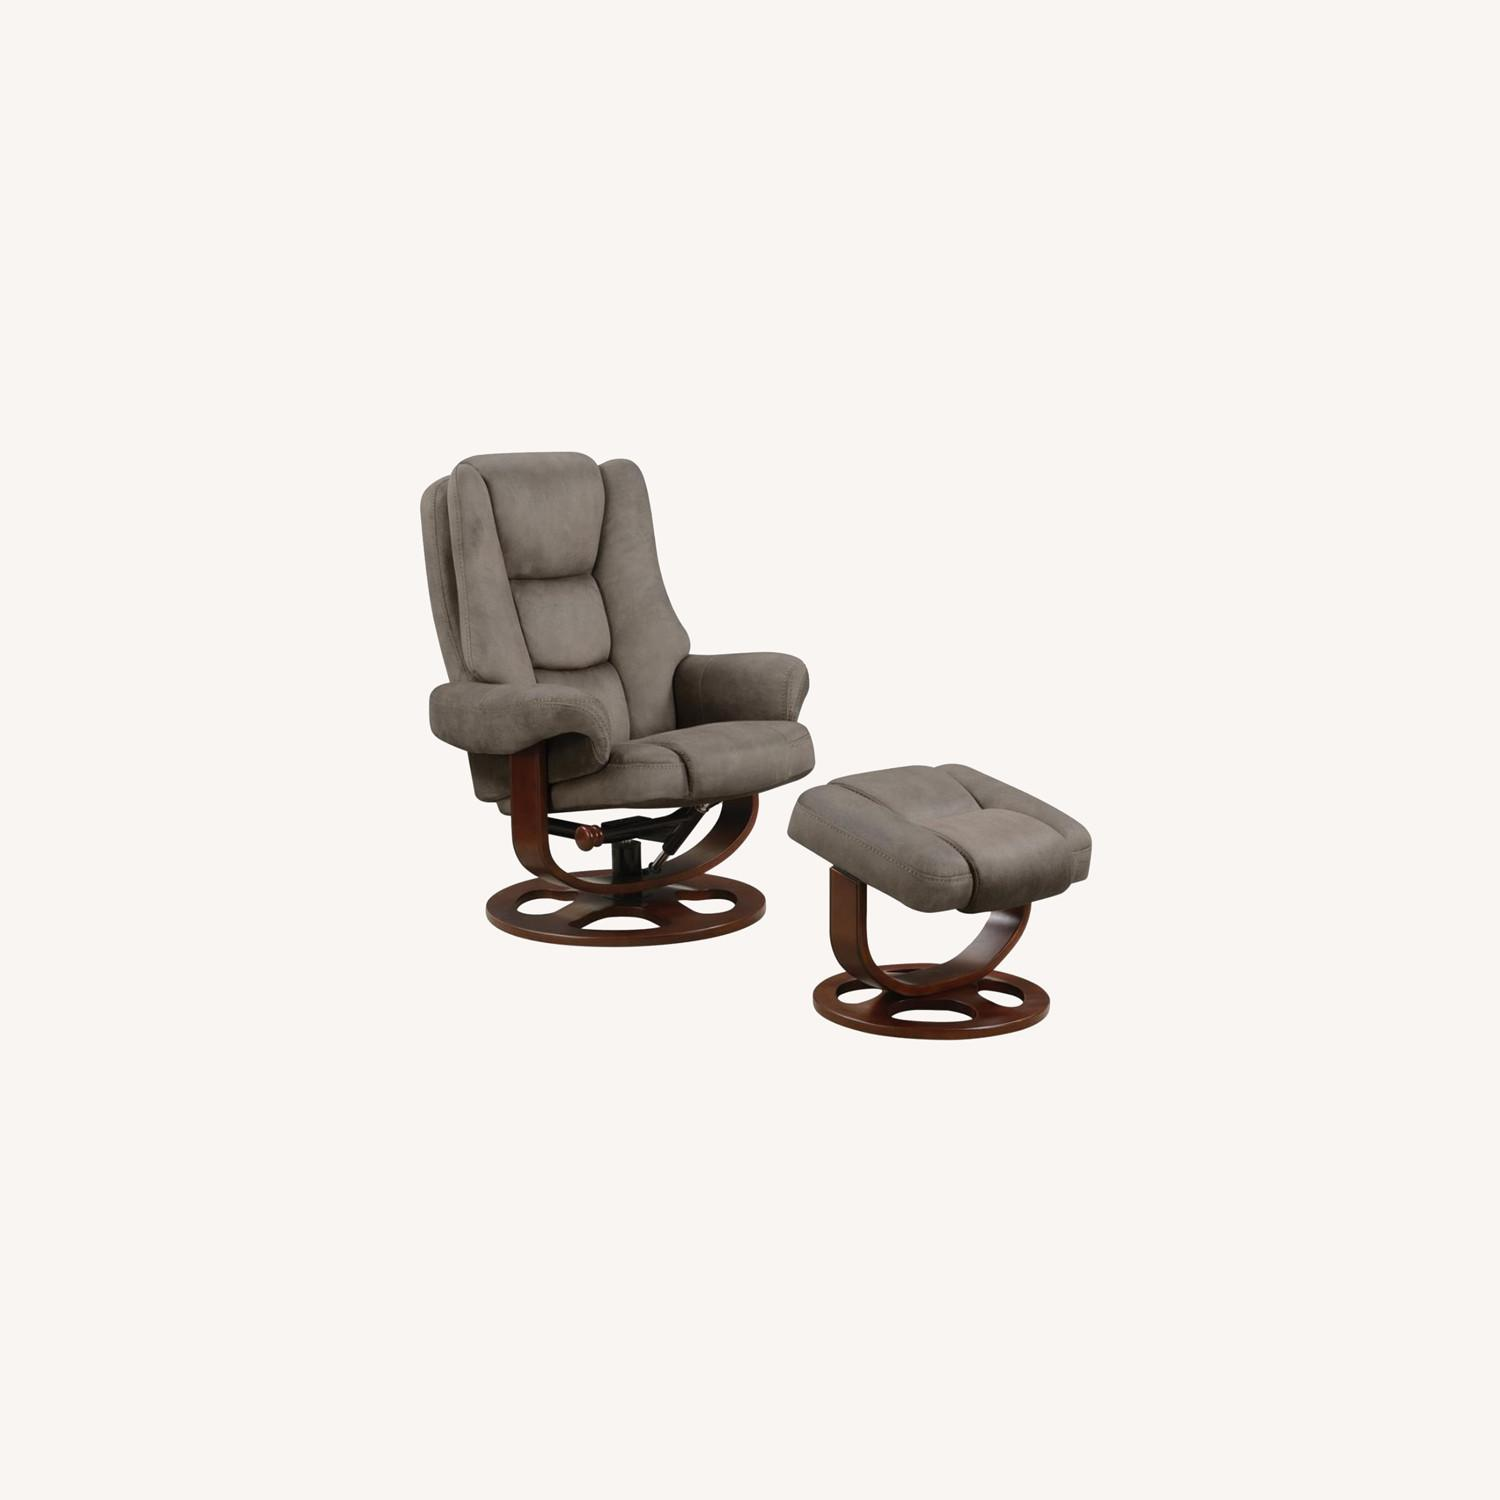 Recliner W/ Ottoman In 2-Tone Grey Faux Suede - image-8